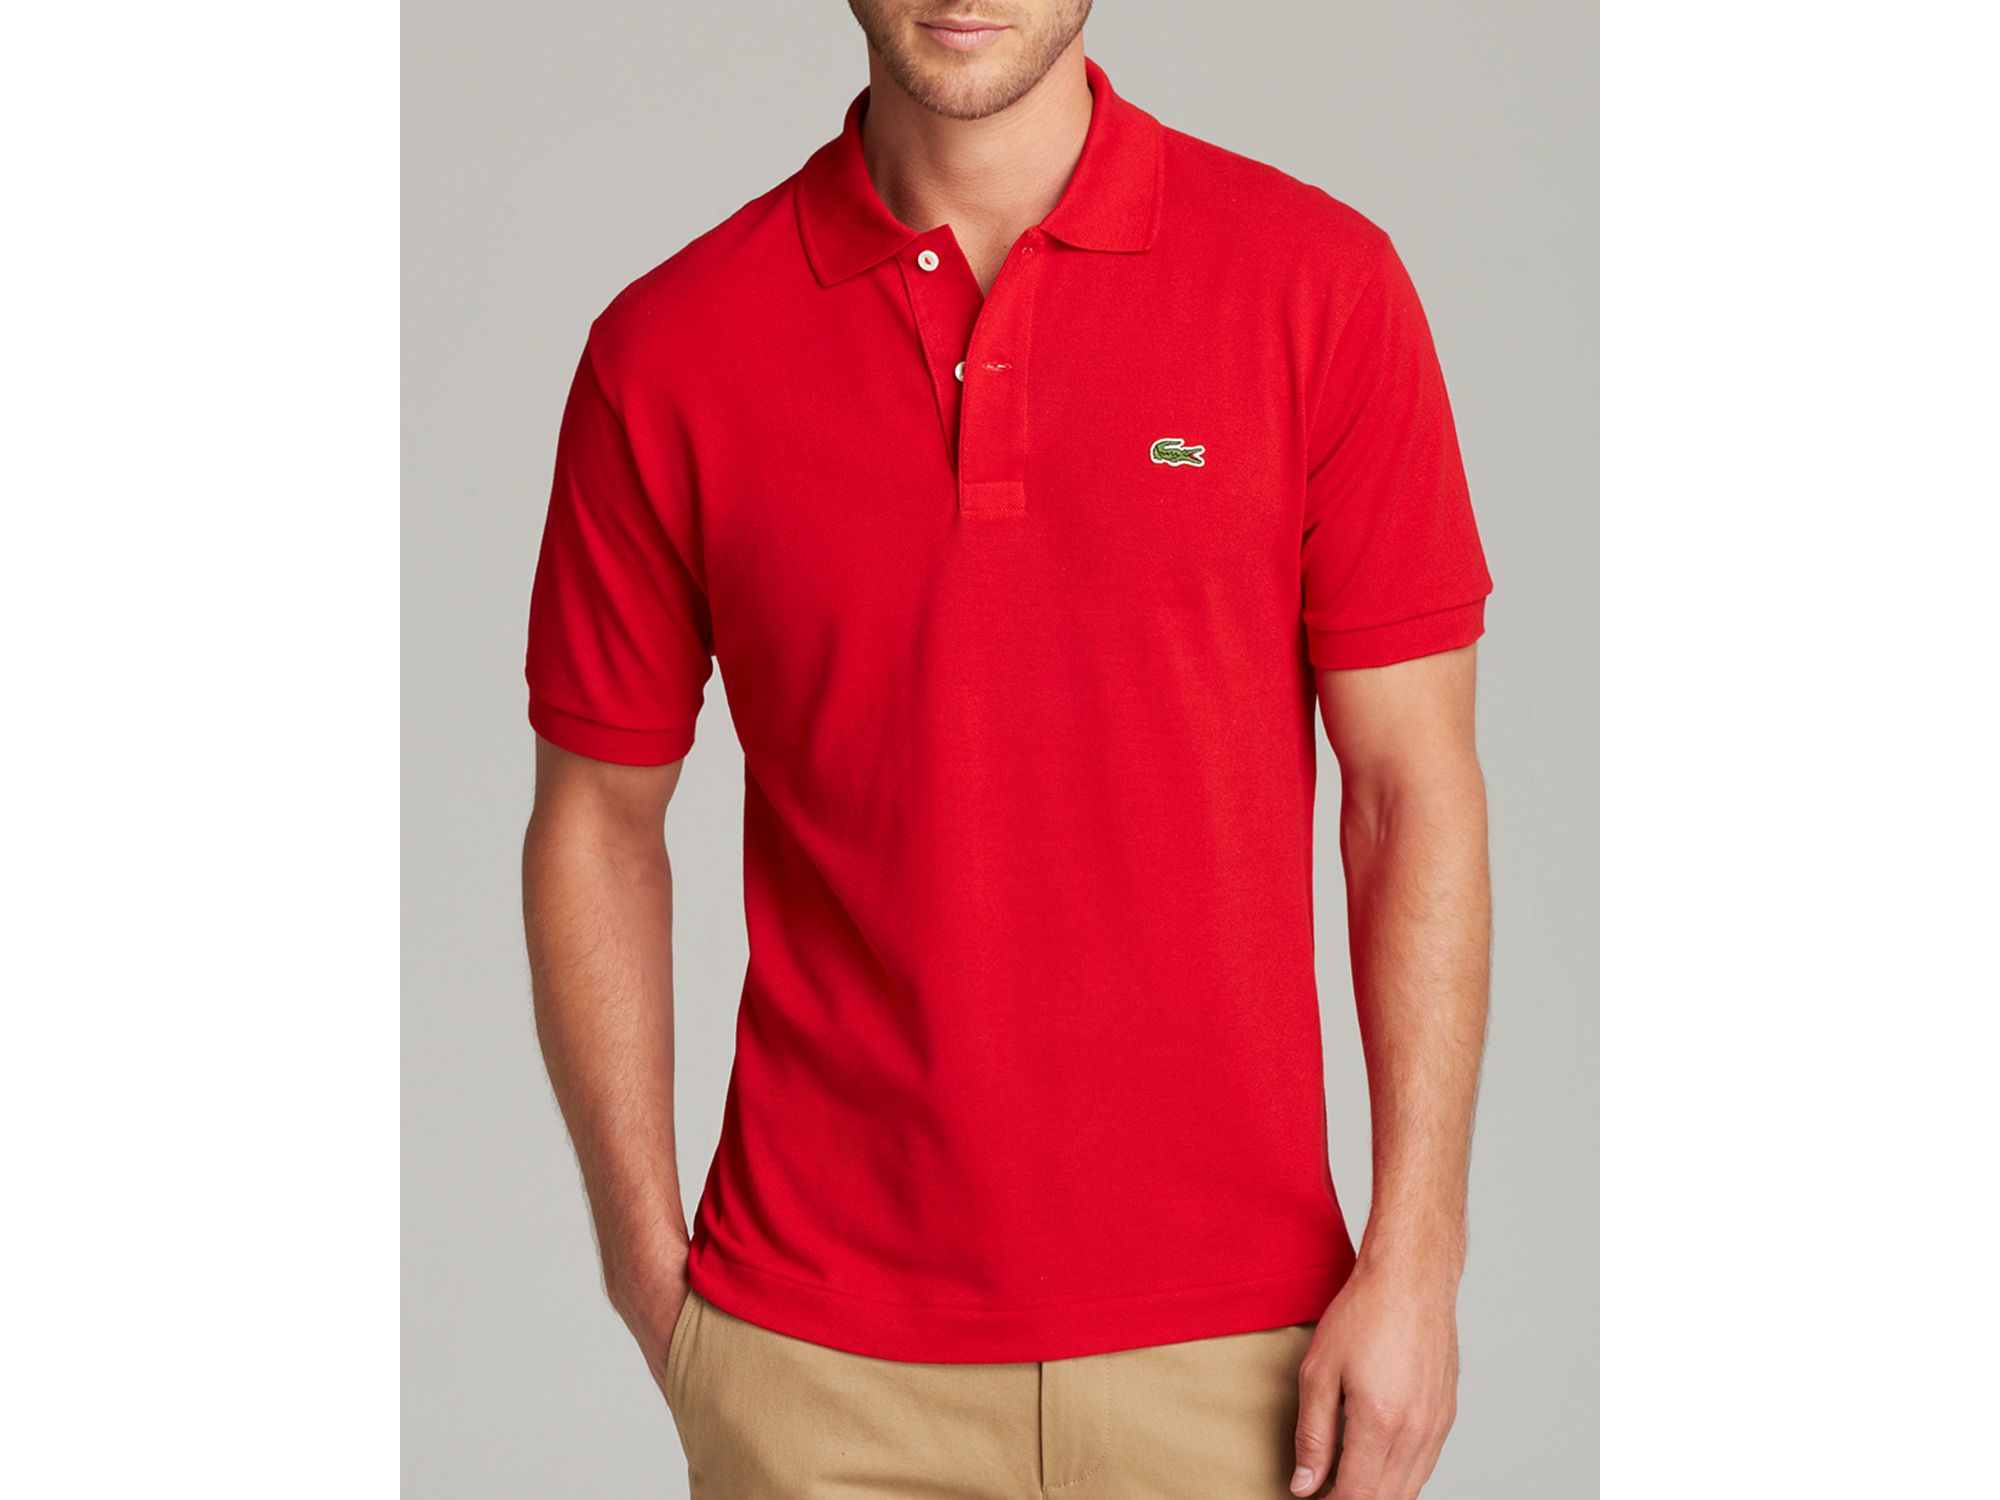 Canada Red Polo Shirt 4ea54 Cd9ab